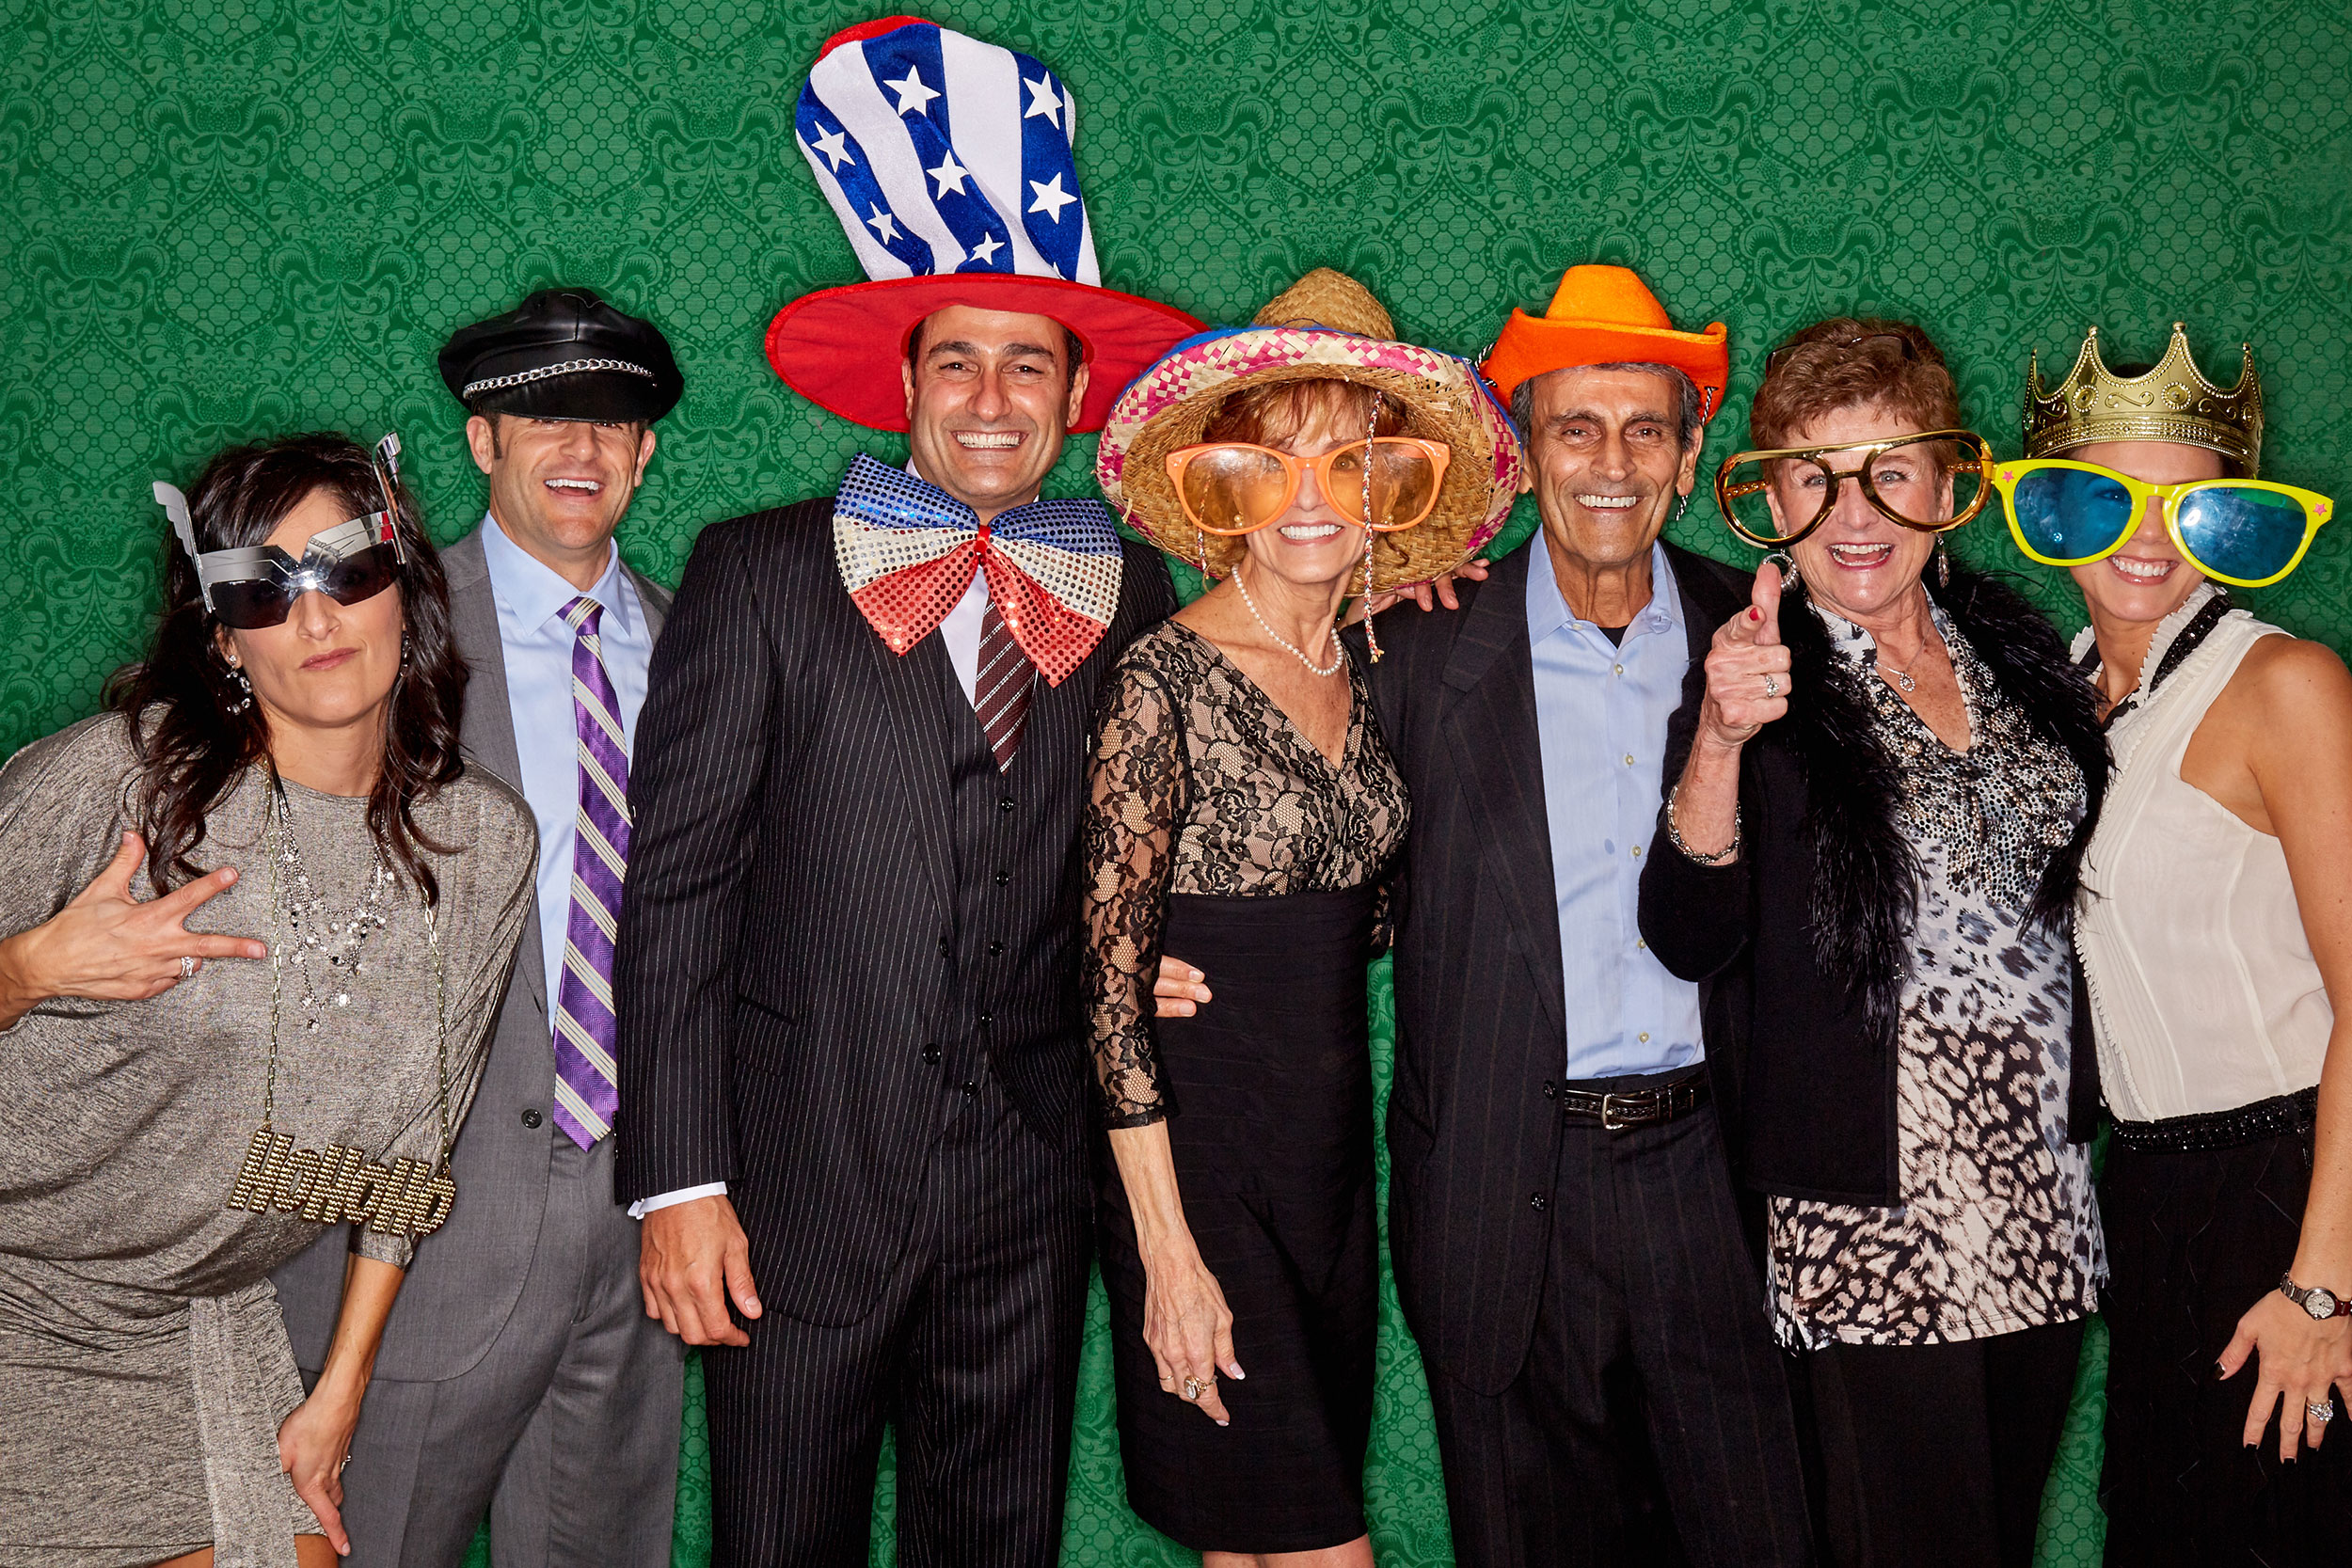 louisville-photo-booth-111.jpg